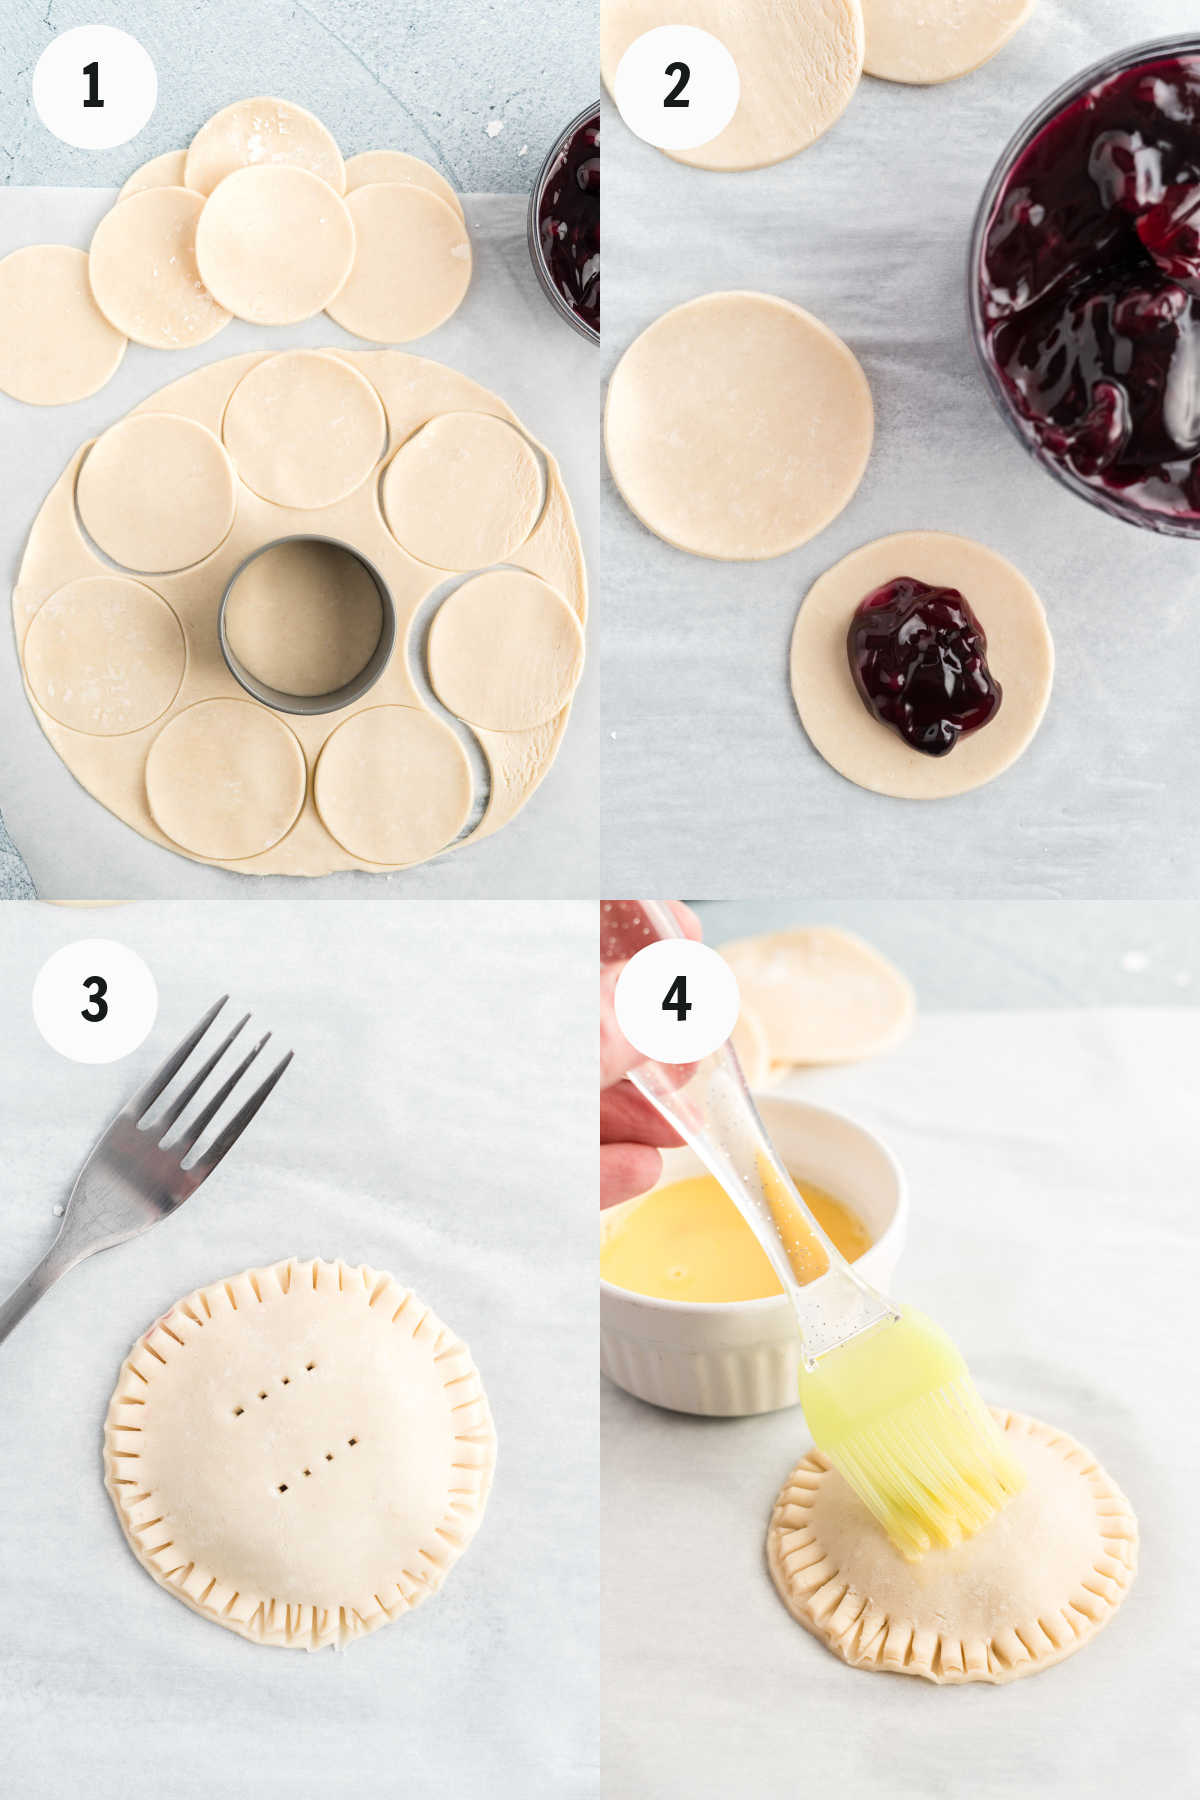 Cutting pastry and filling with blueberry pie filling.